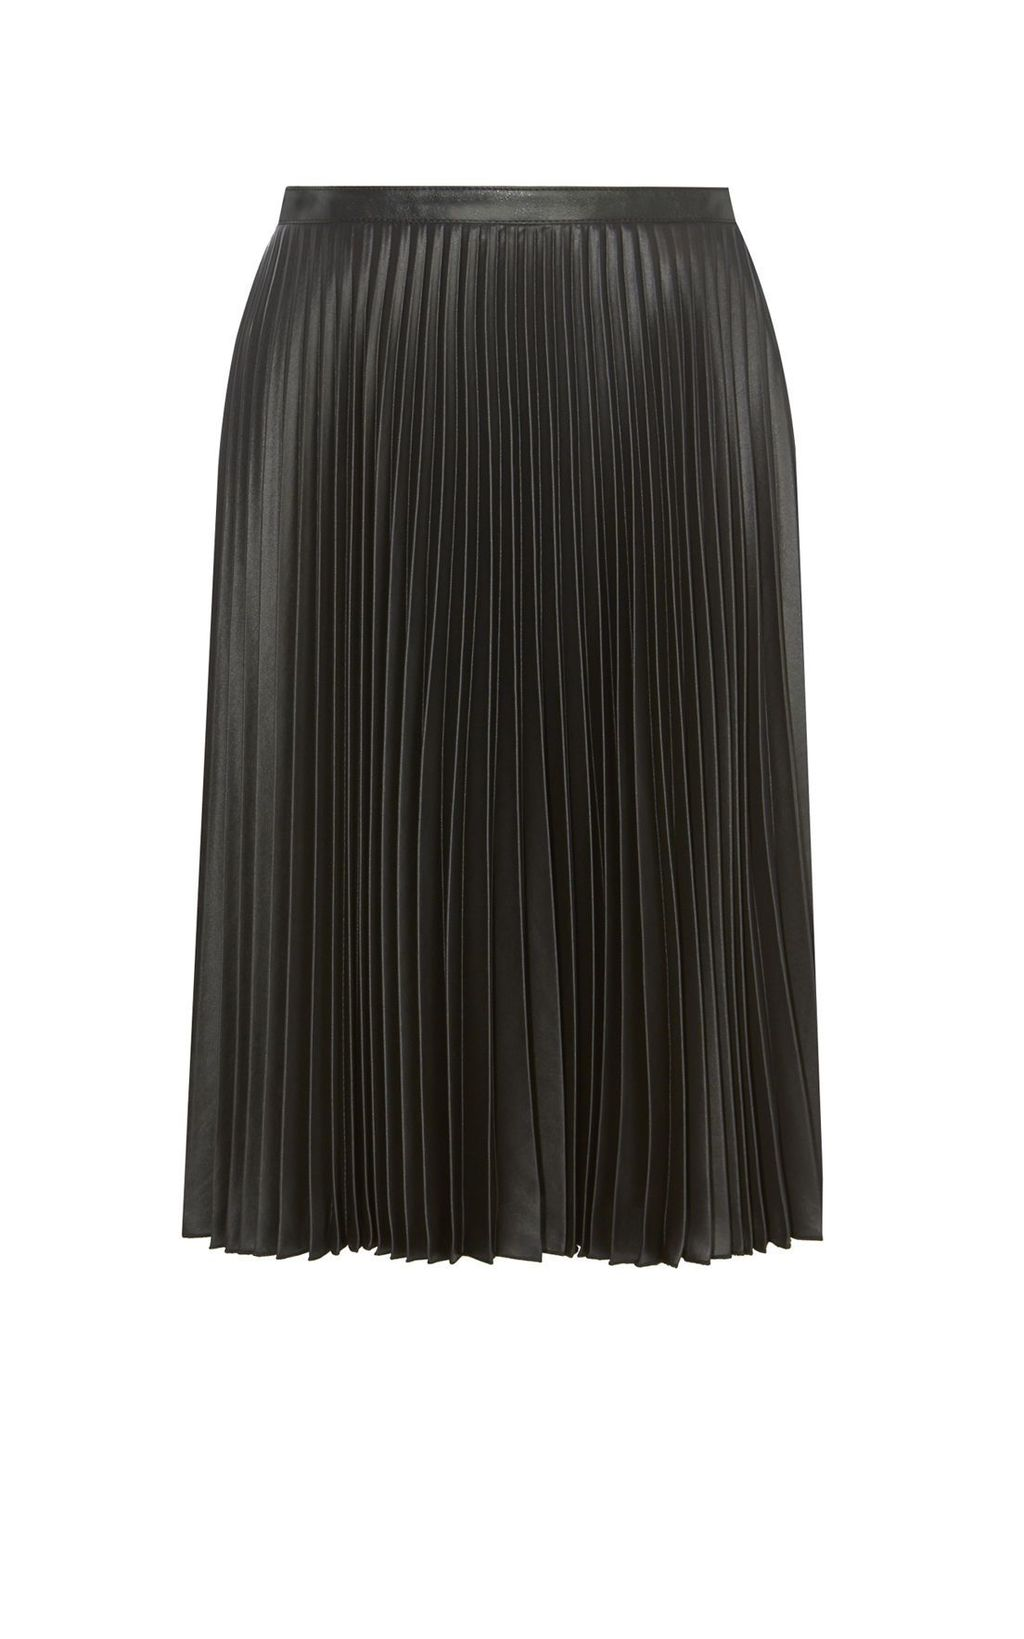 Wetlook Pleat Maxi Skirt, Black - length: below the knee; pattern: plain; fit: loose/voluminous; style: pleated; waist: mid/regular rise; predominant colour: black; occasions: work, occasion; fibres: polyester/polyamide - 100%; texture group: structured shiny - satin/tafetta/silk etc.; pattern type: fabric; season: s/s 2016; wardrobe: basic